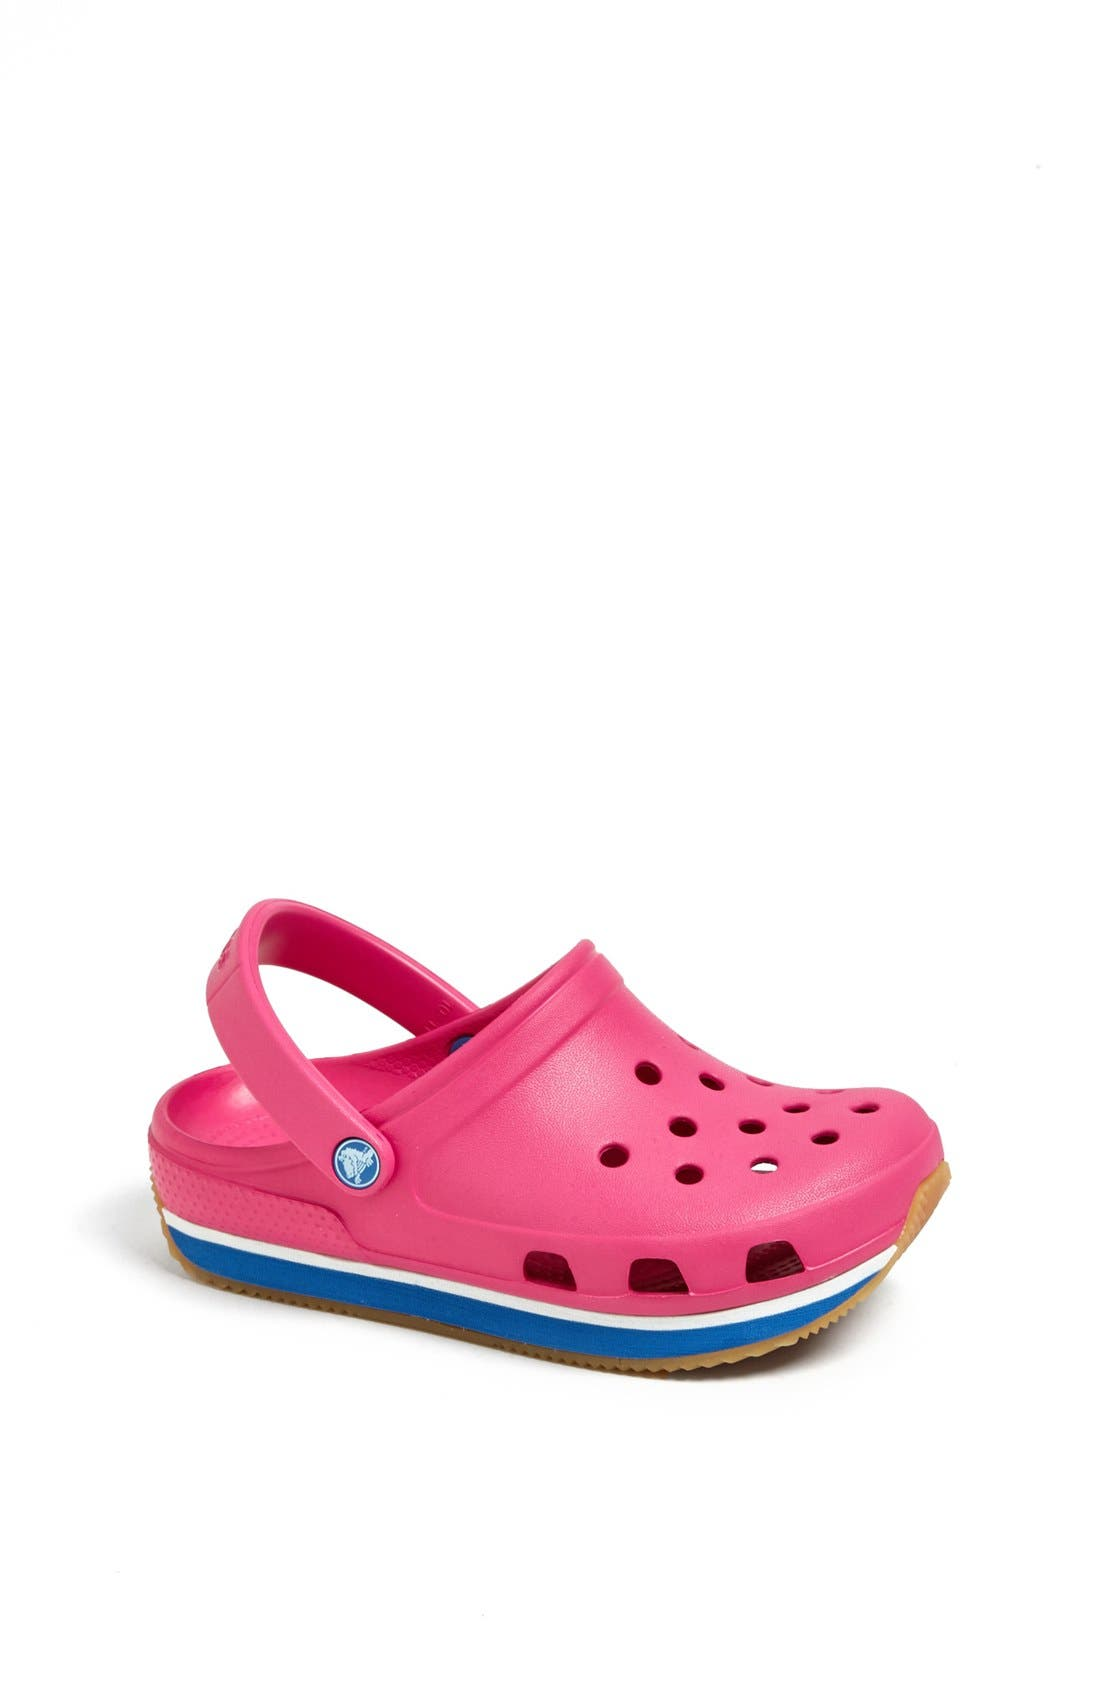 Main Image - CROCS™ 'Retro Clog' Slip-On (Walker, Toddler & Little Kid)